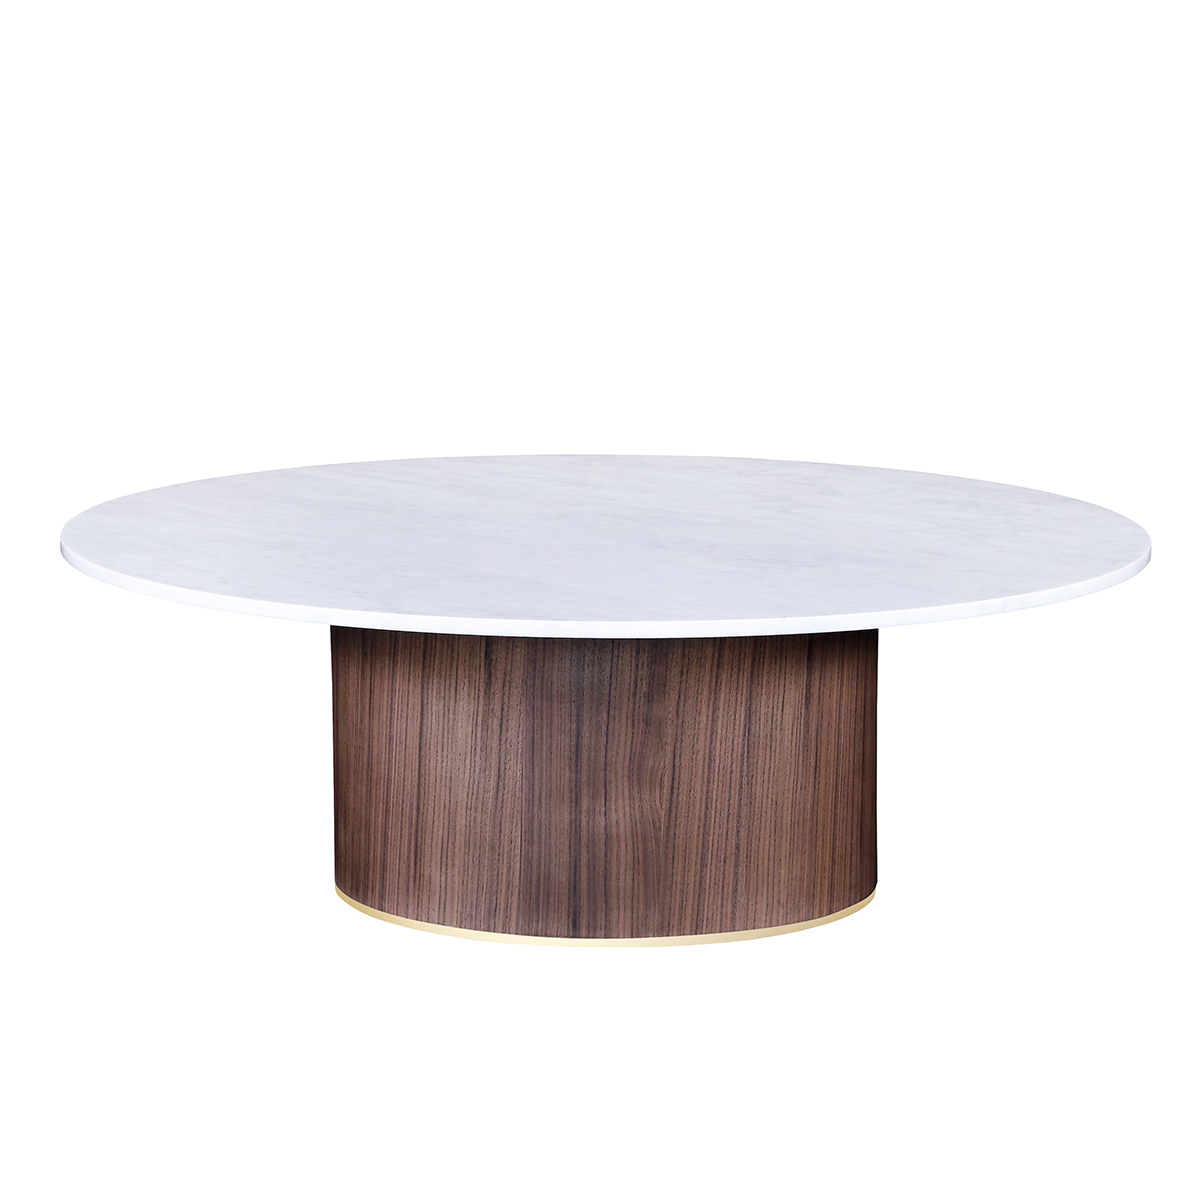 Delano Coffee Table – Rund